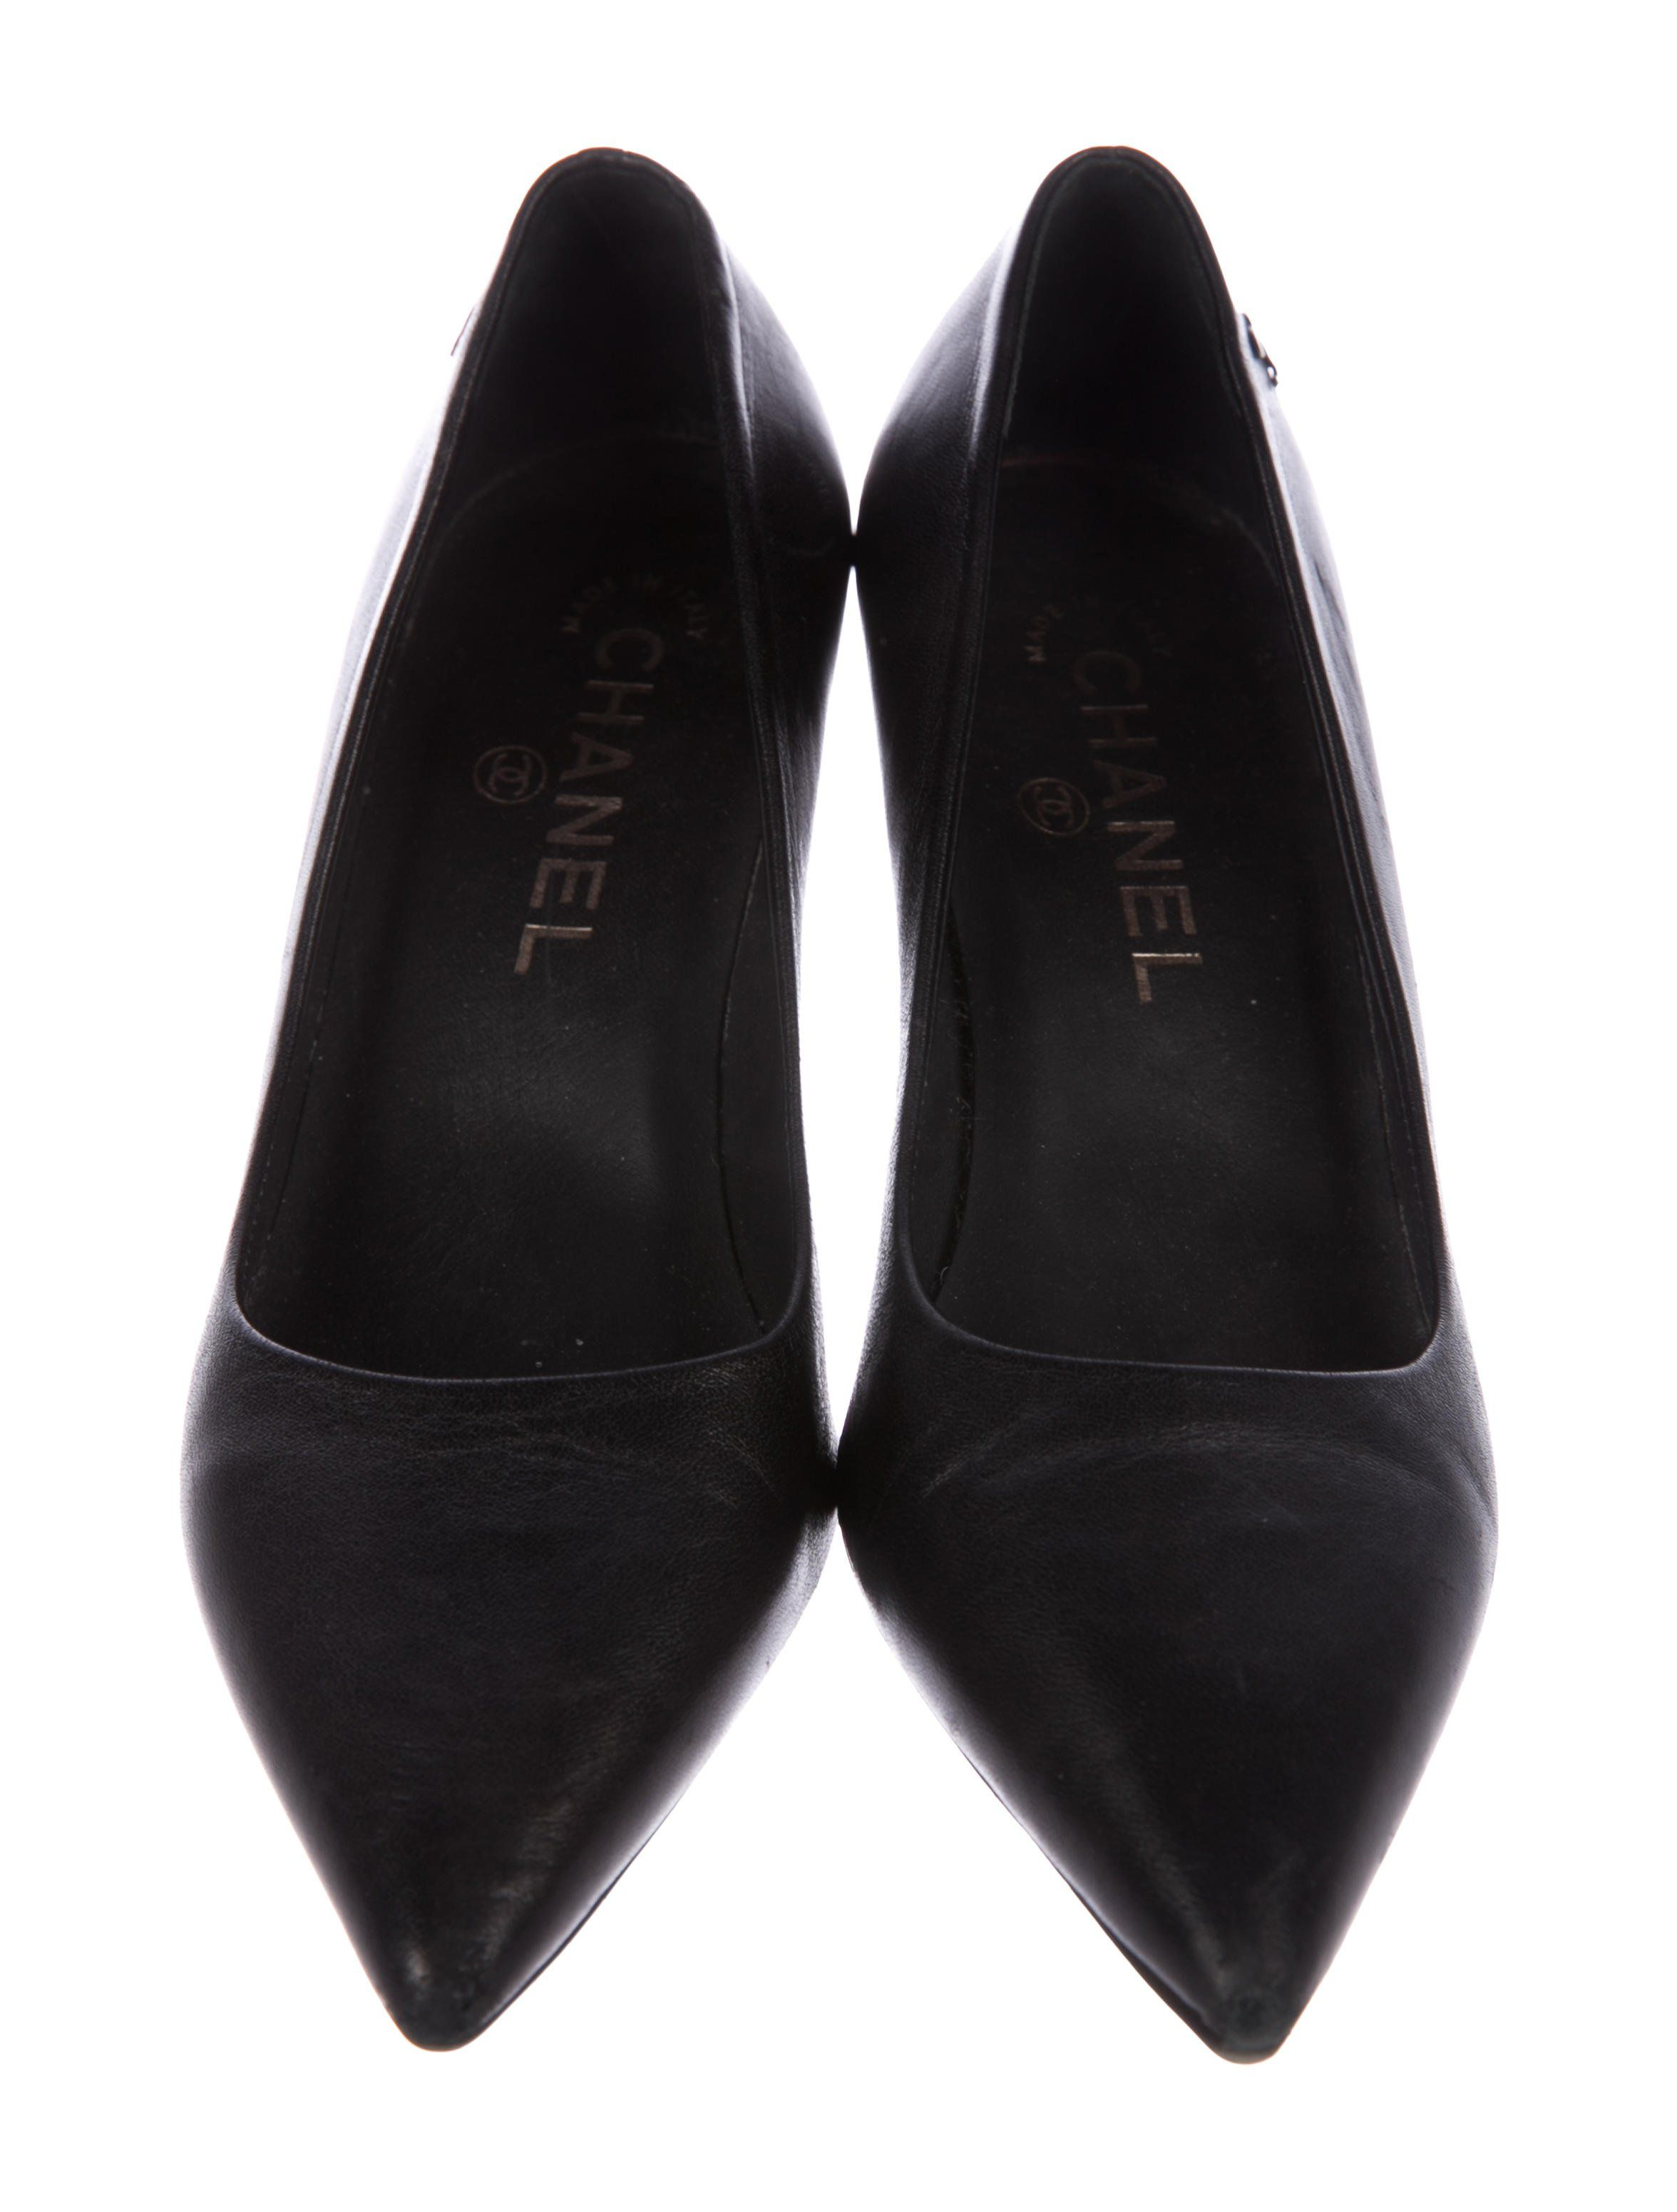 5a01215e9b2 Black leather Chanel pointed-toe pumps with silver-tone interlocking CC at  sides and covered heels.